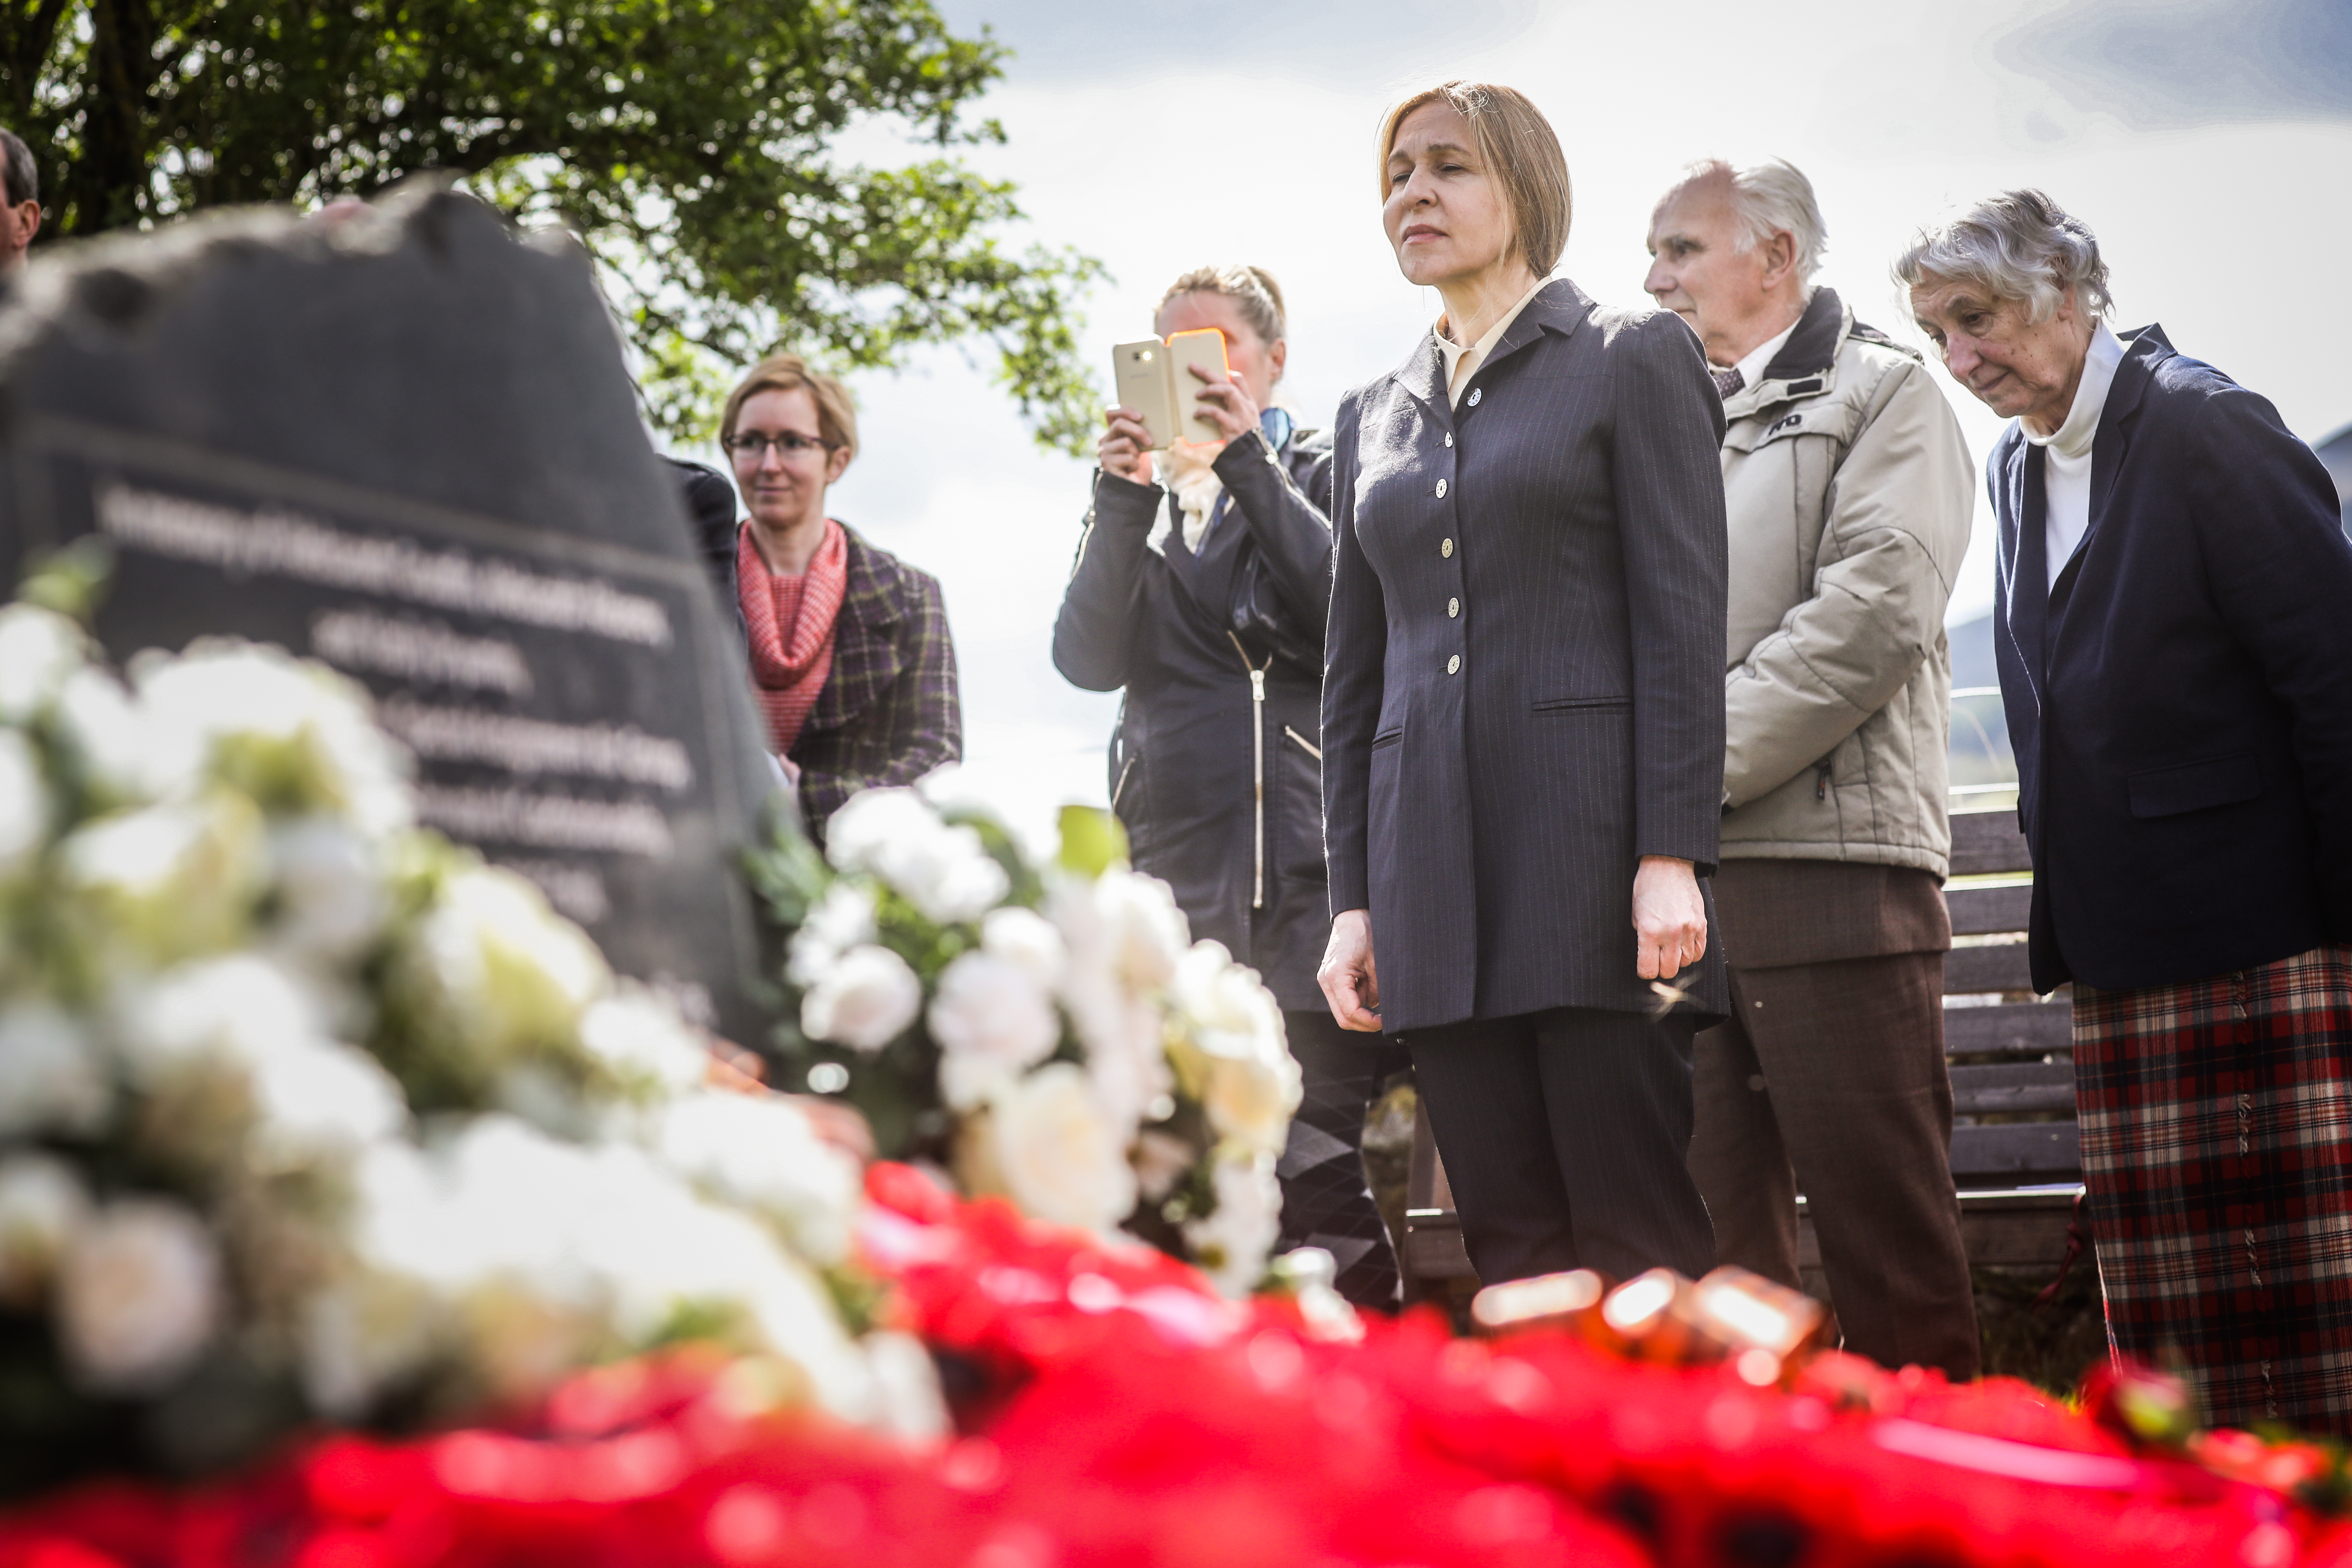 """Anna said she was proud to have played a part in ensuring the men's sacrifice was not forgotten. """"I have no words, it was the most moving ceremony. It was incredible, I had tears in my eyes,"""" she said. """"It was so genuine and moving with lots of people from all walks of life."""""""